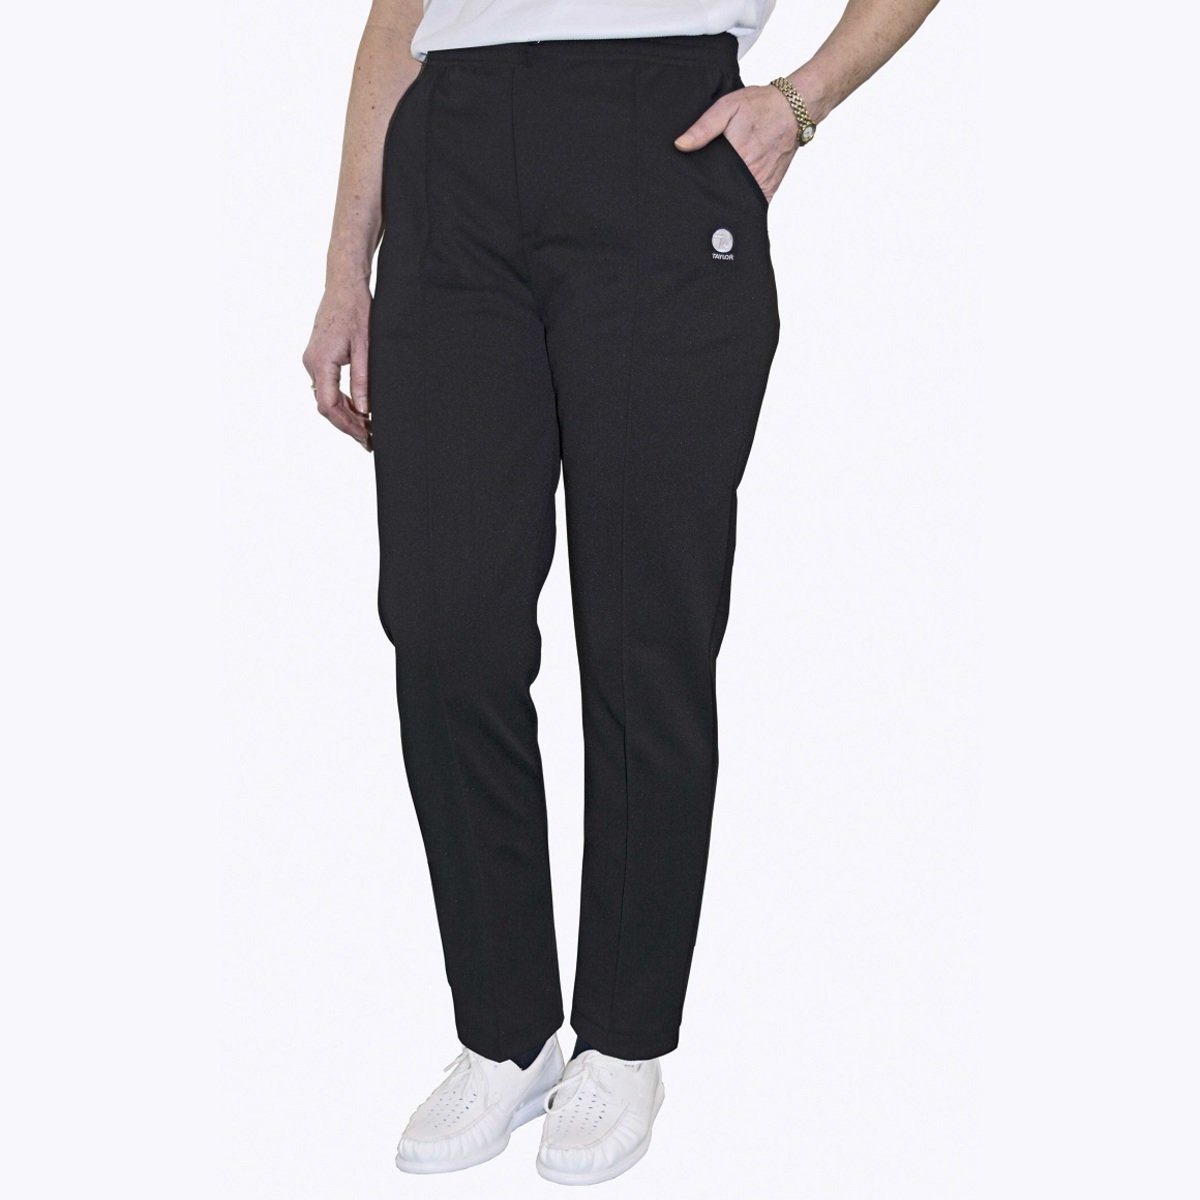 Taylor Bowls Gents Black Sports Trousers